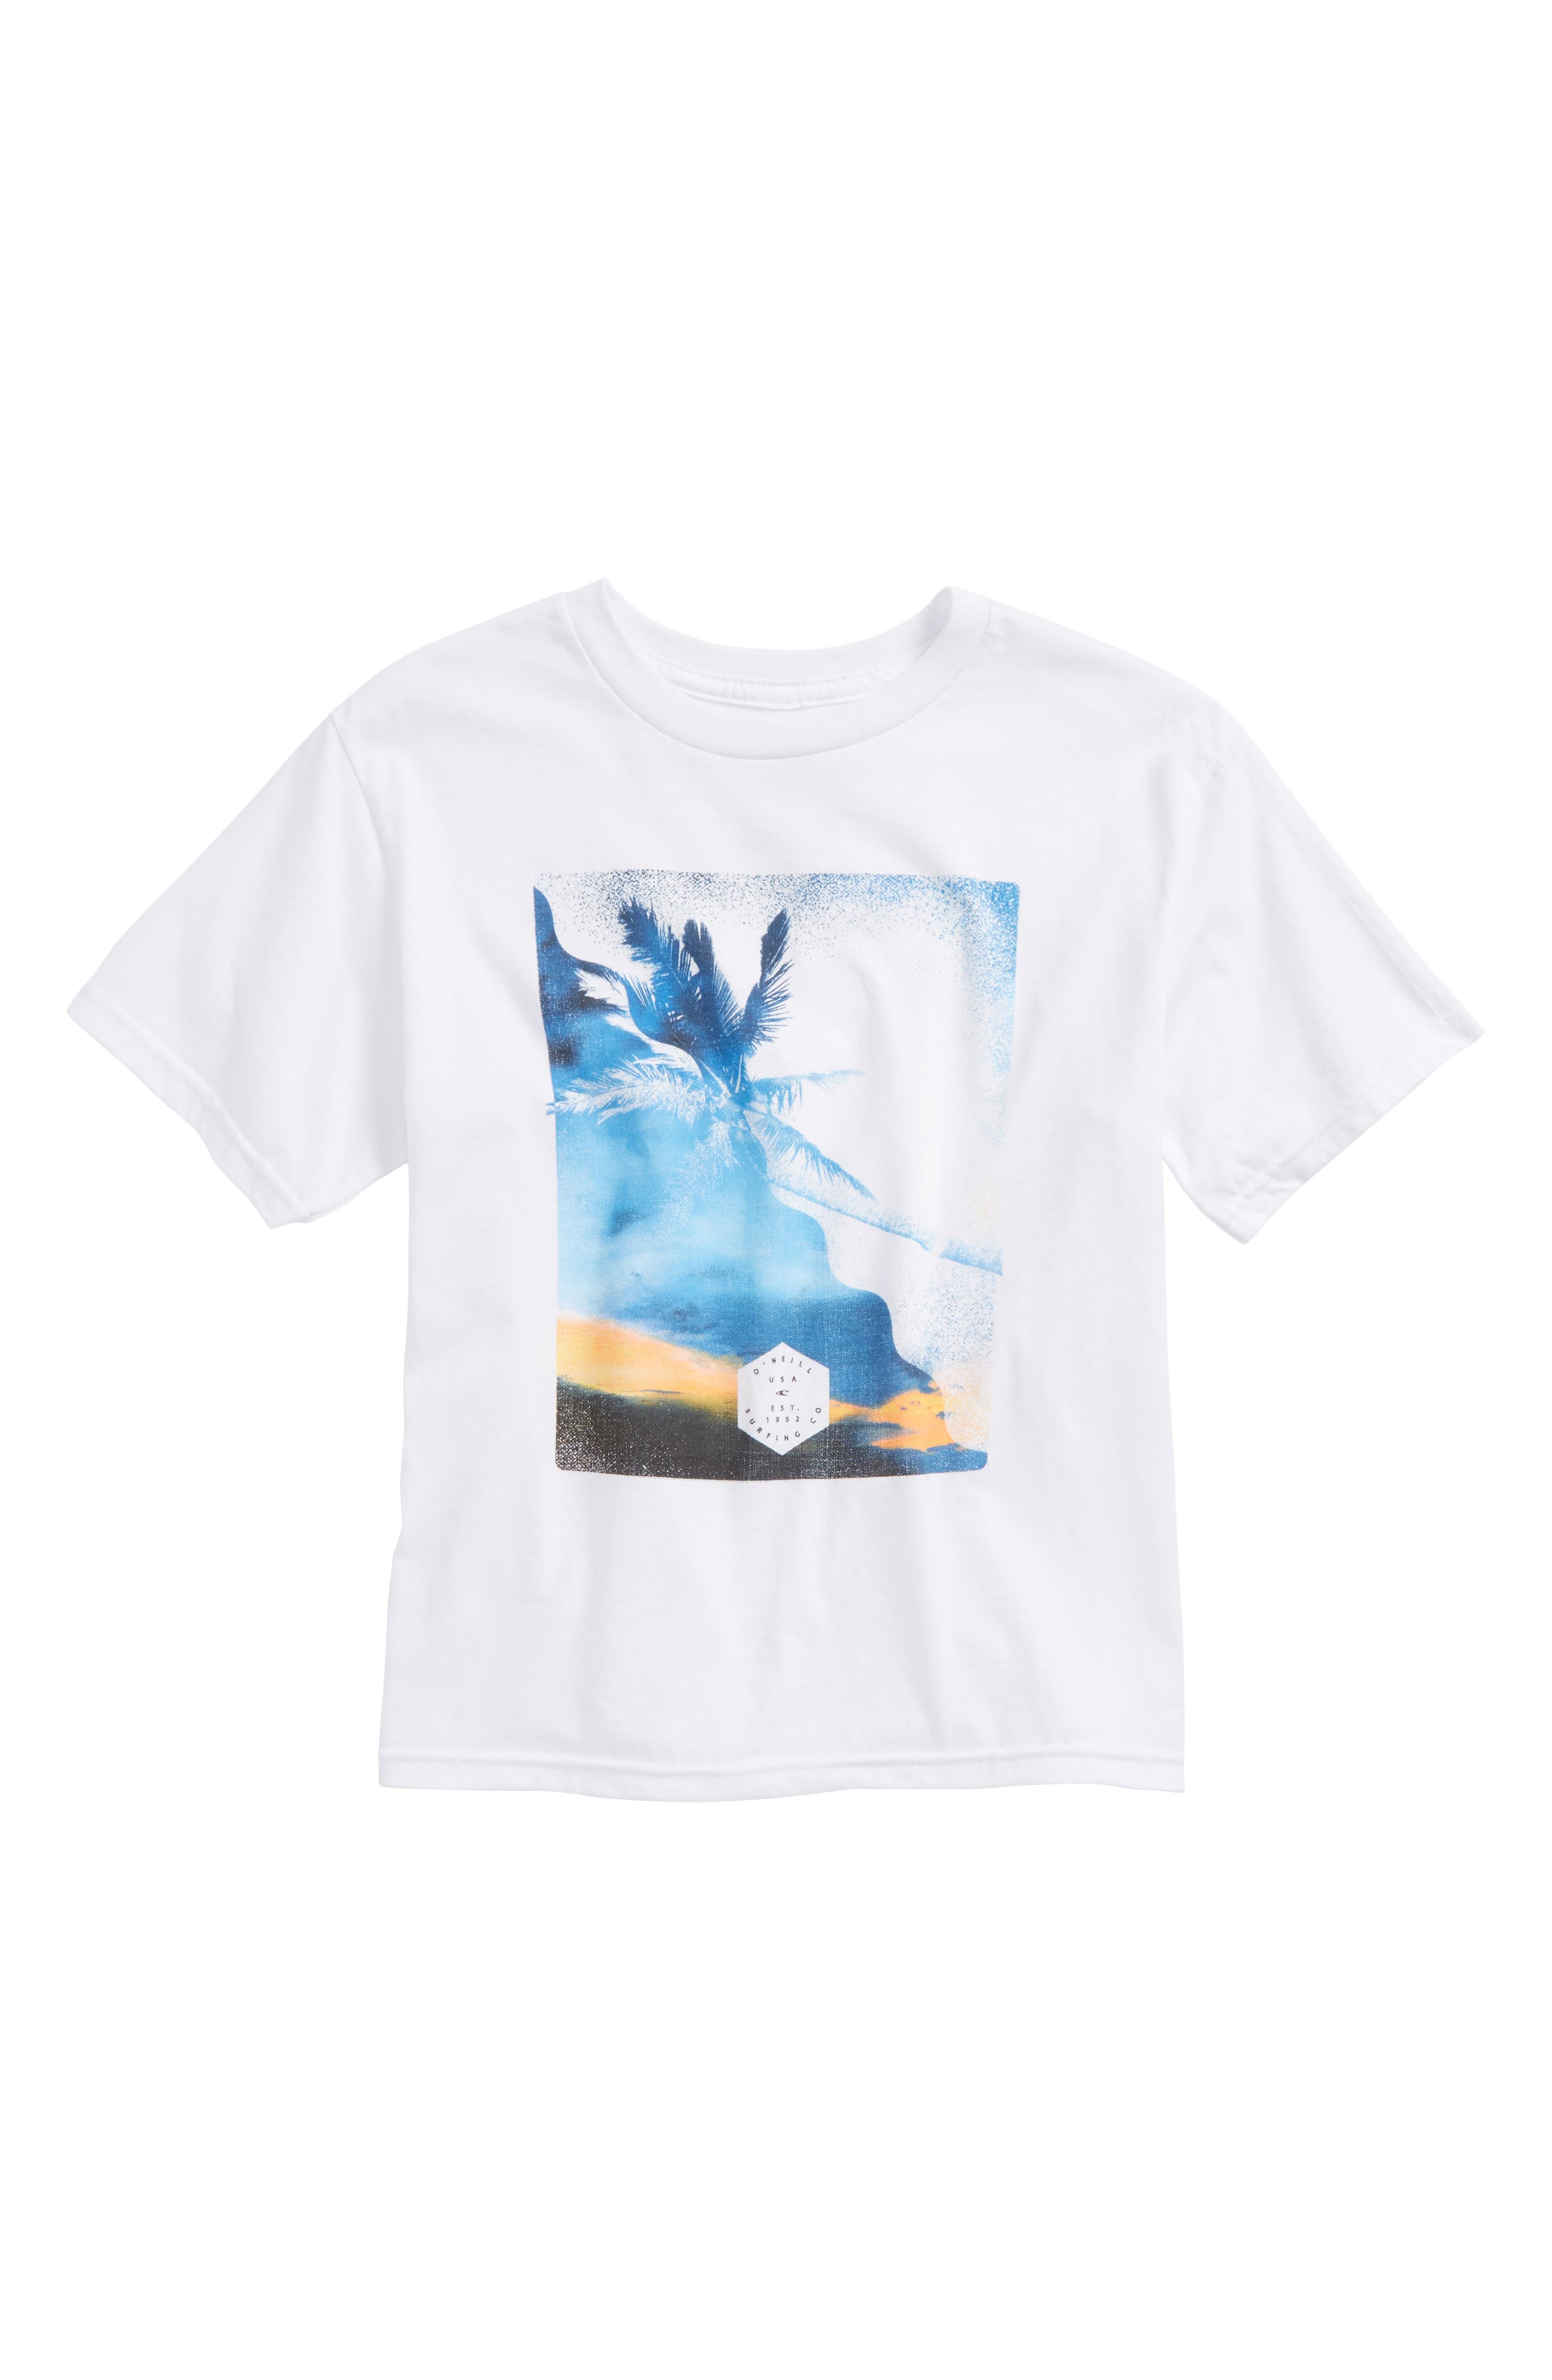 Canopy Graphic T-Shirt,                         Main,                         color, 100